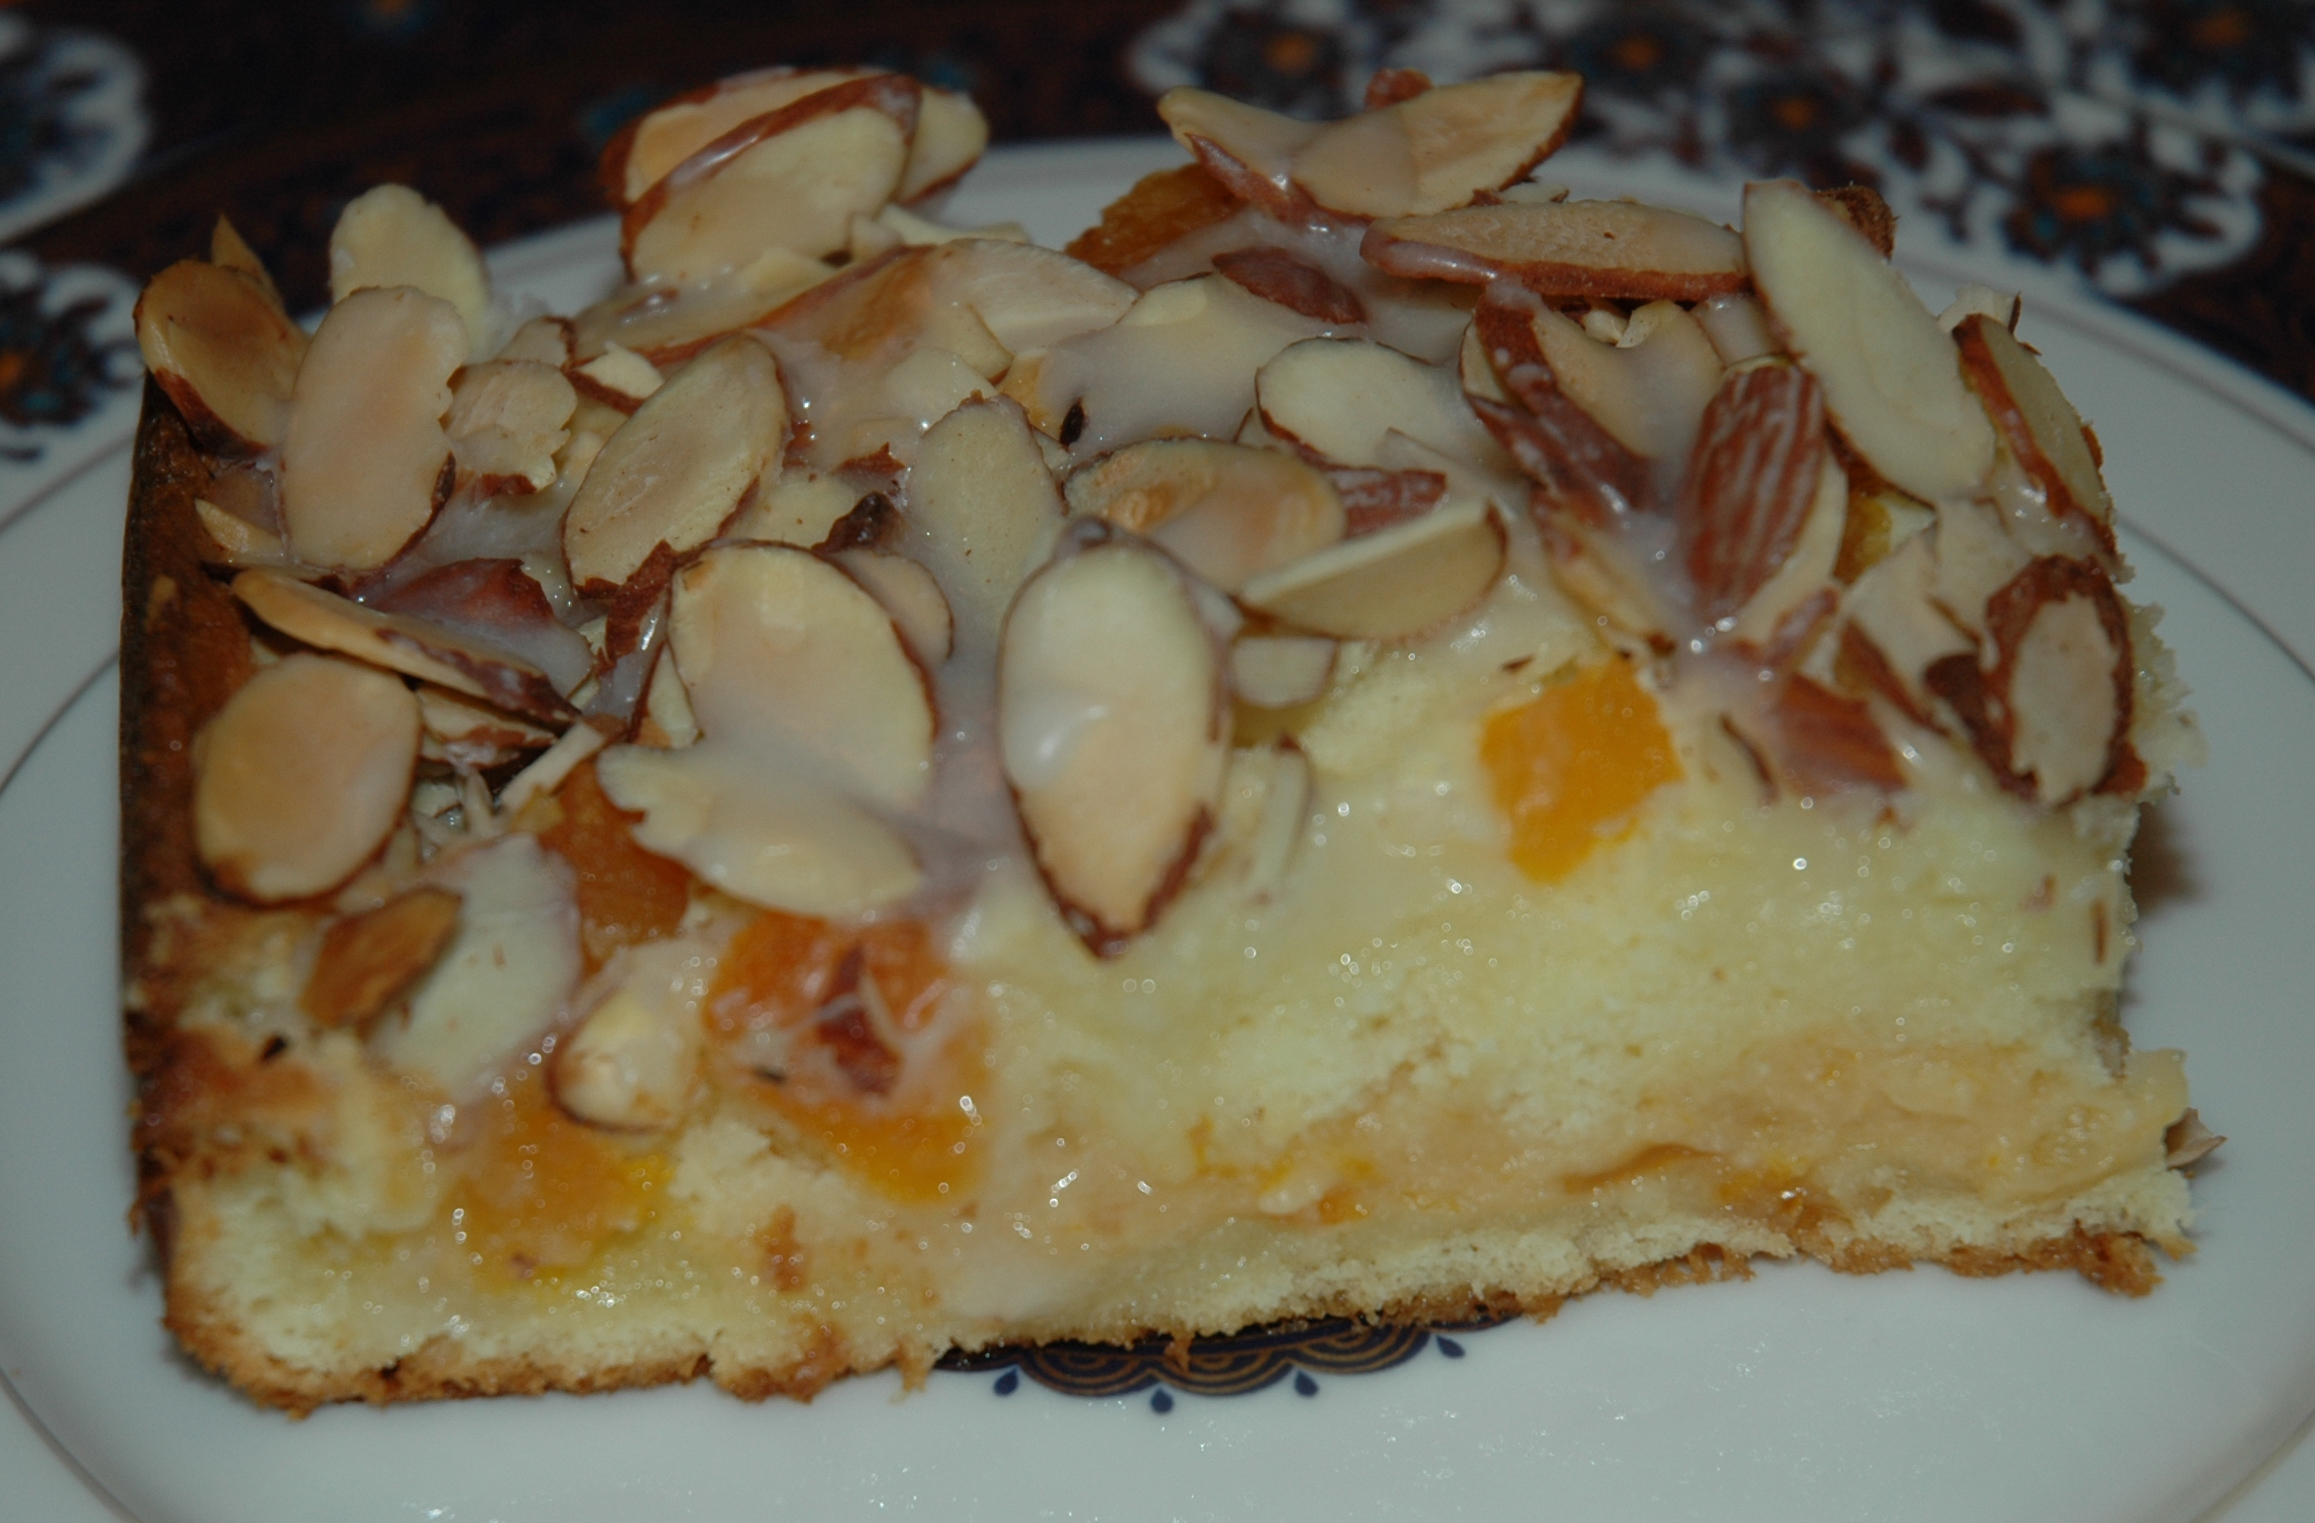 Apricot Cake Dessert Savennieres Maine Et Loire France Photographic ...